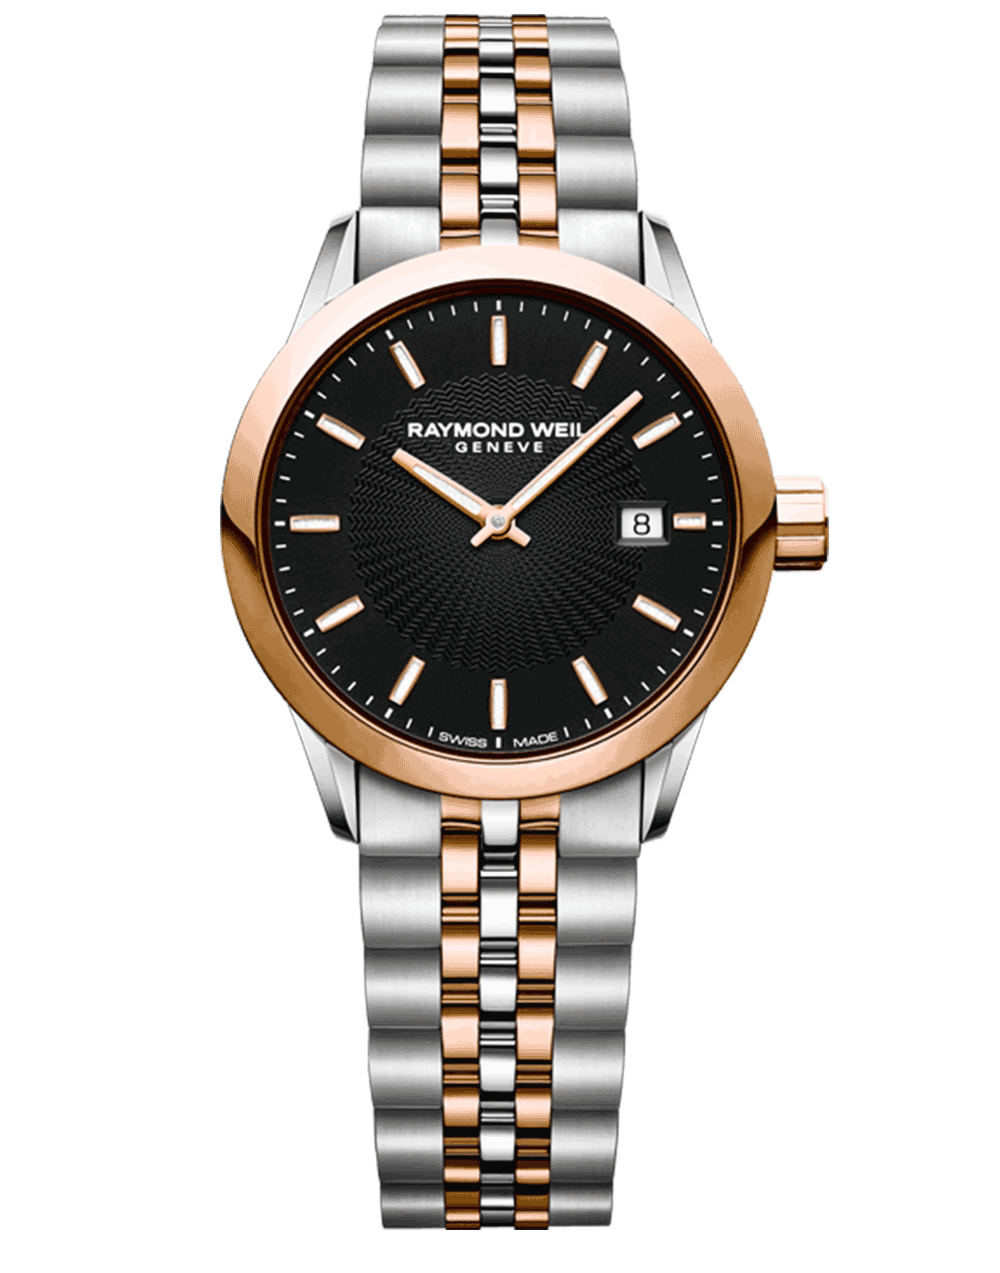 Raymond Weil Geneve Two-tone Rose Gold Black Dial Ladies Luxury Watch